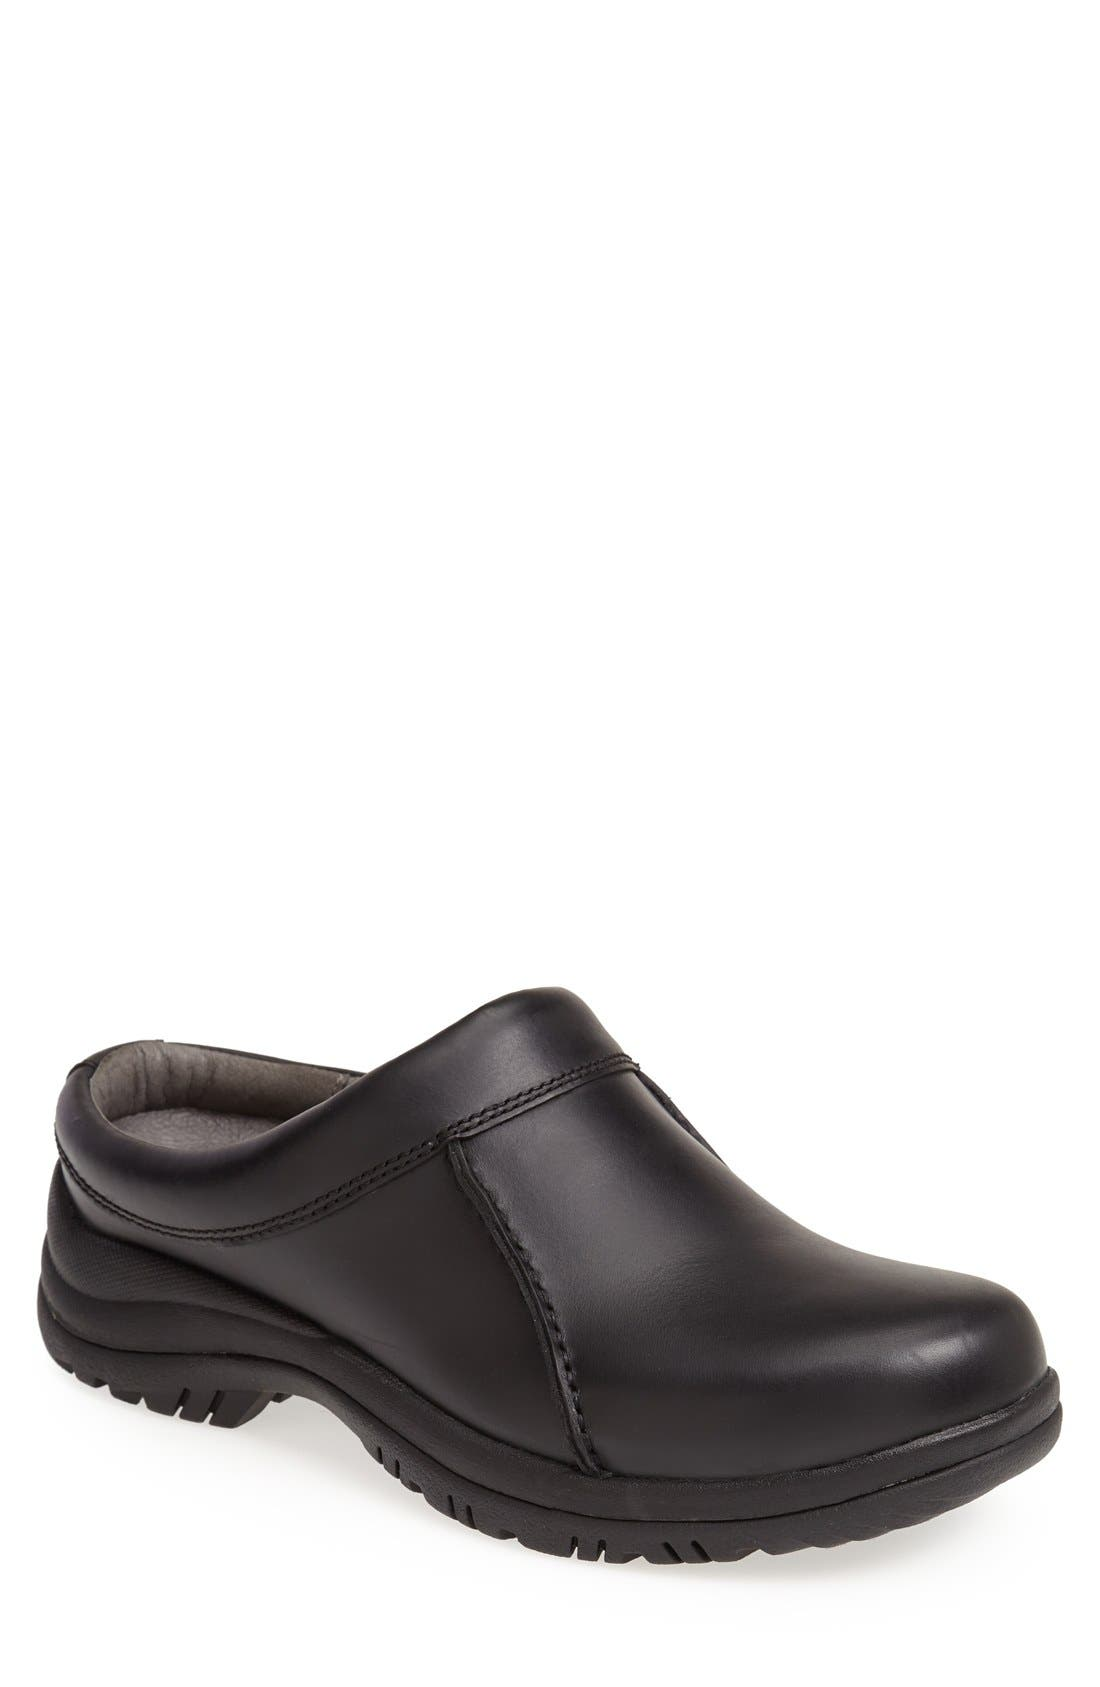 'Wil' Slip-On,                         Main,                         color, Black Smooth